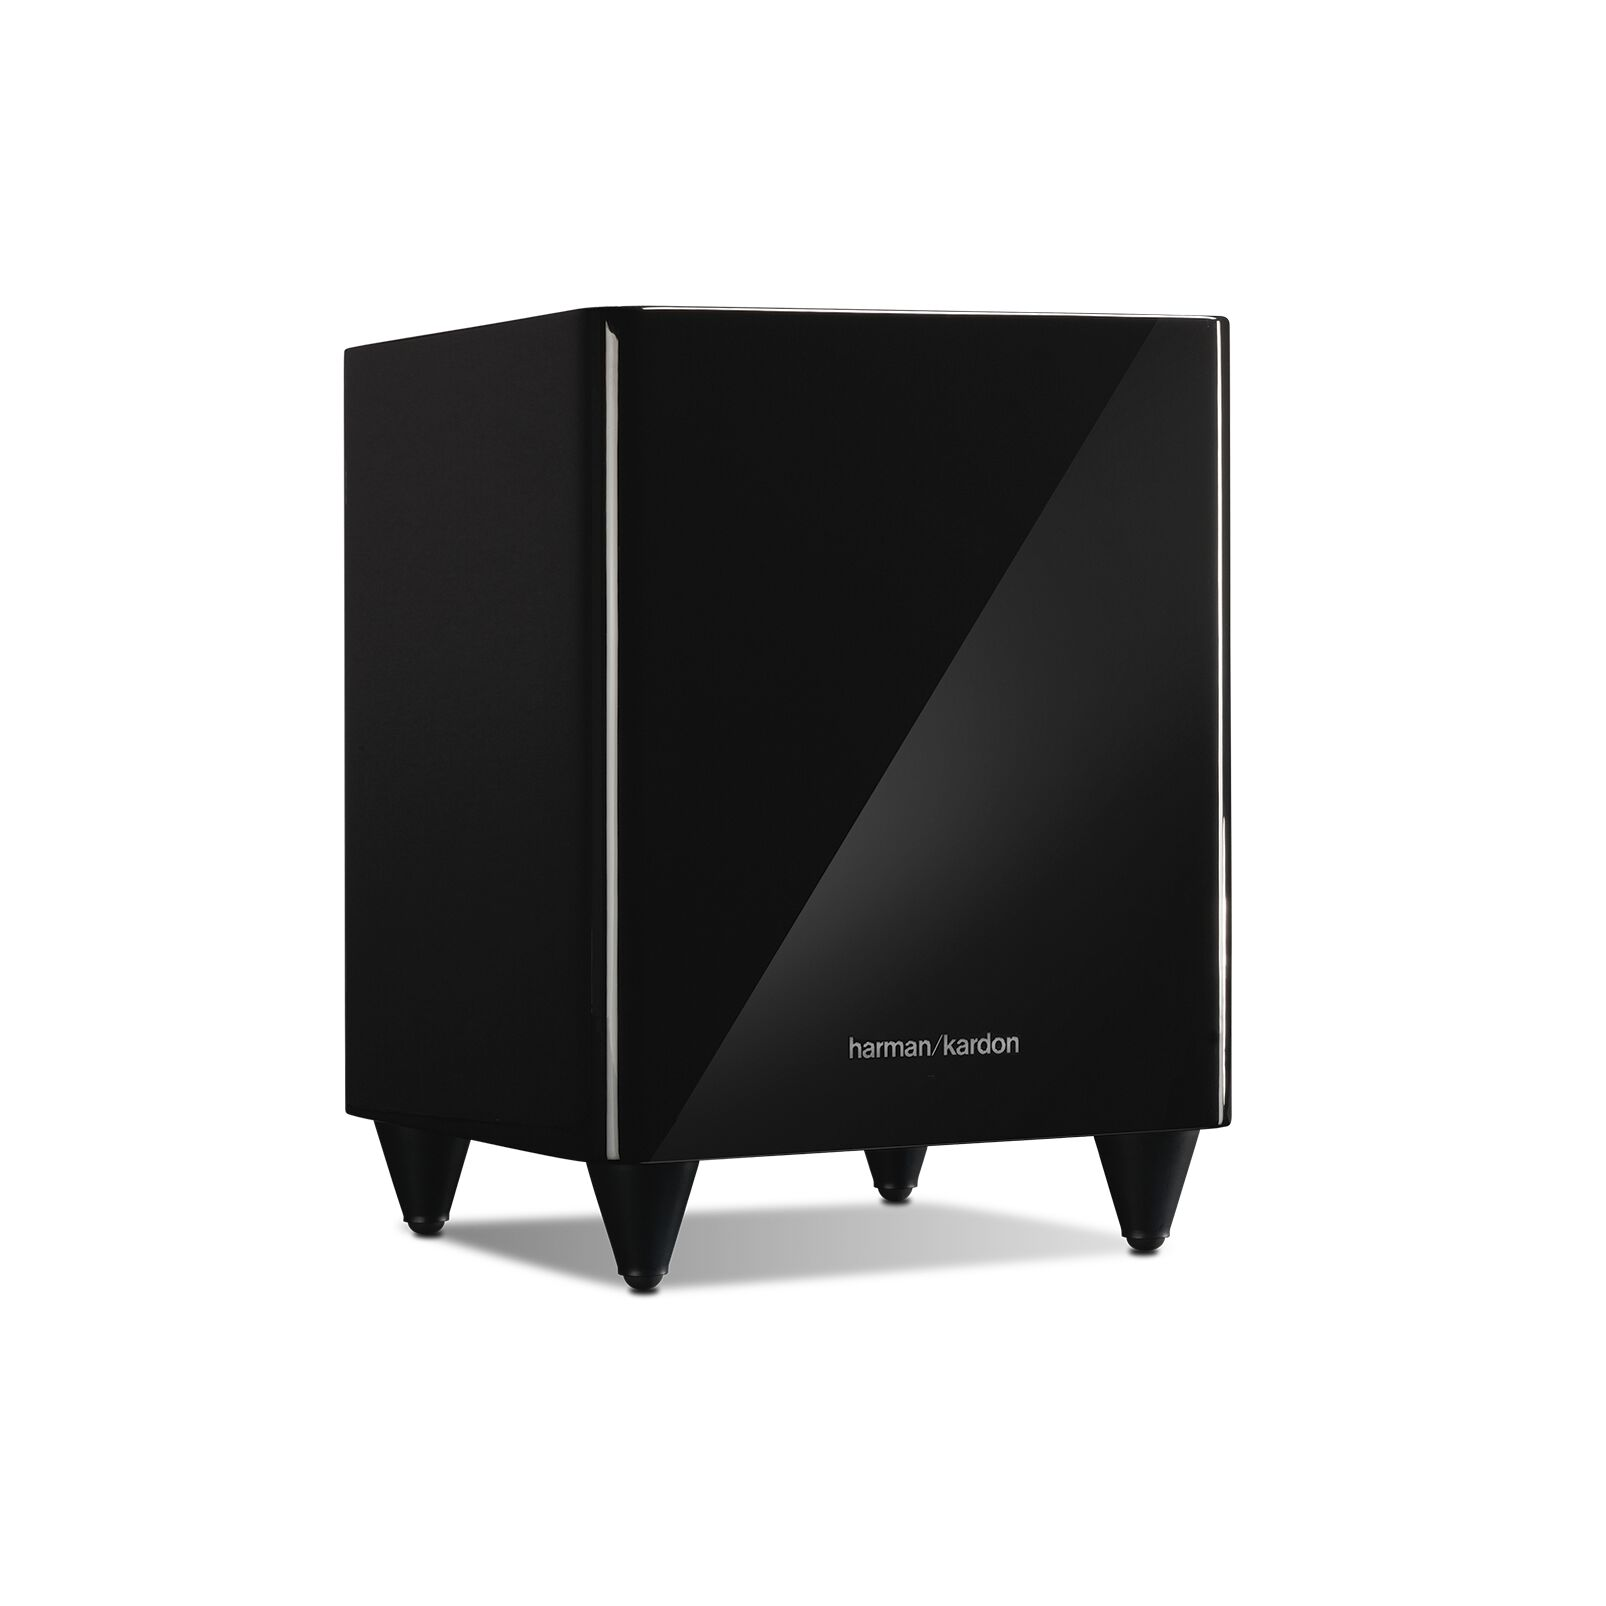 Image of   harman kardon HKTS 210 Black